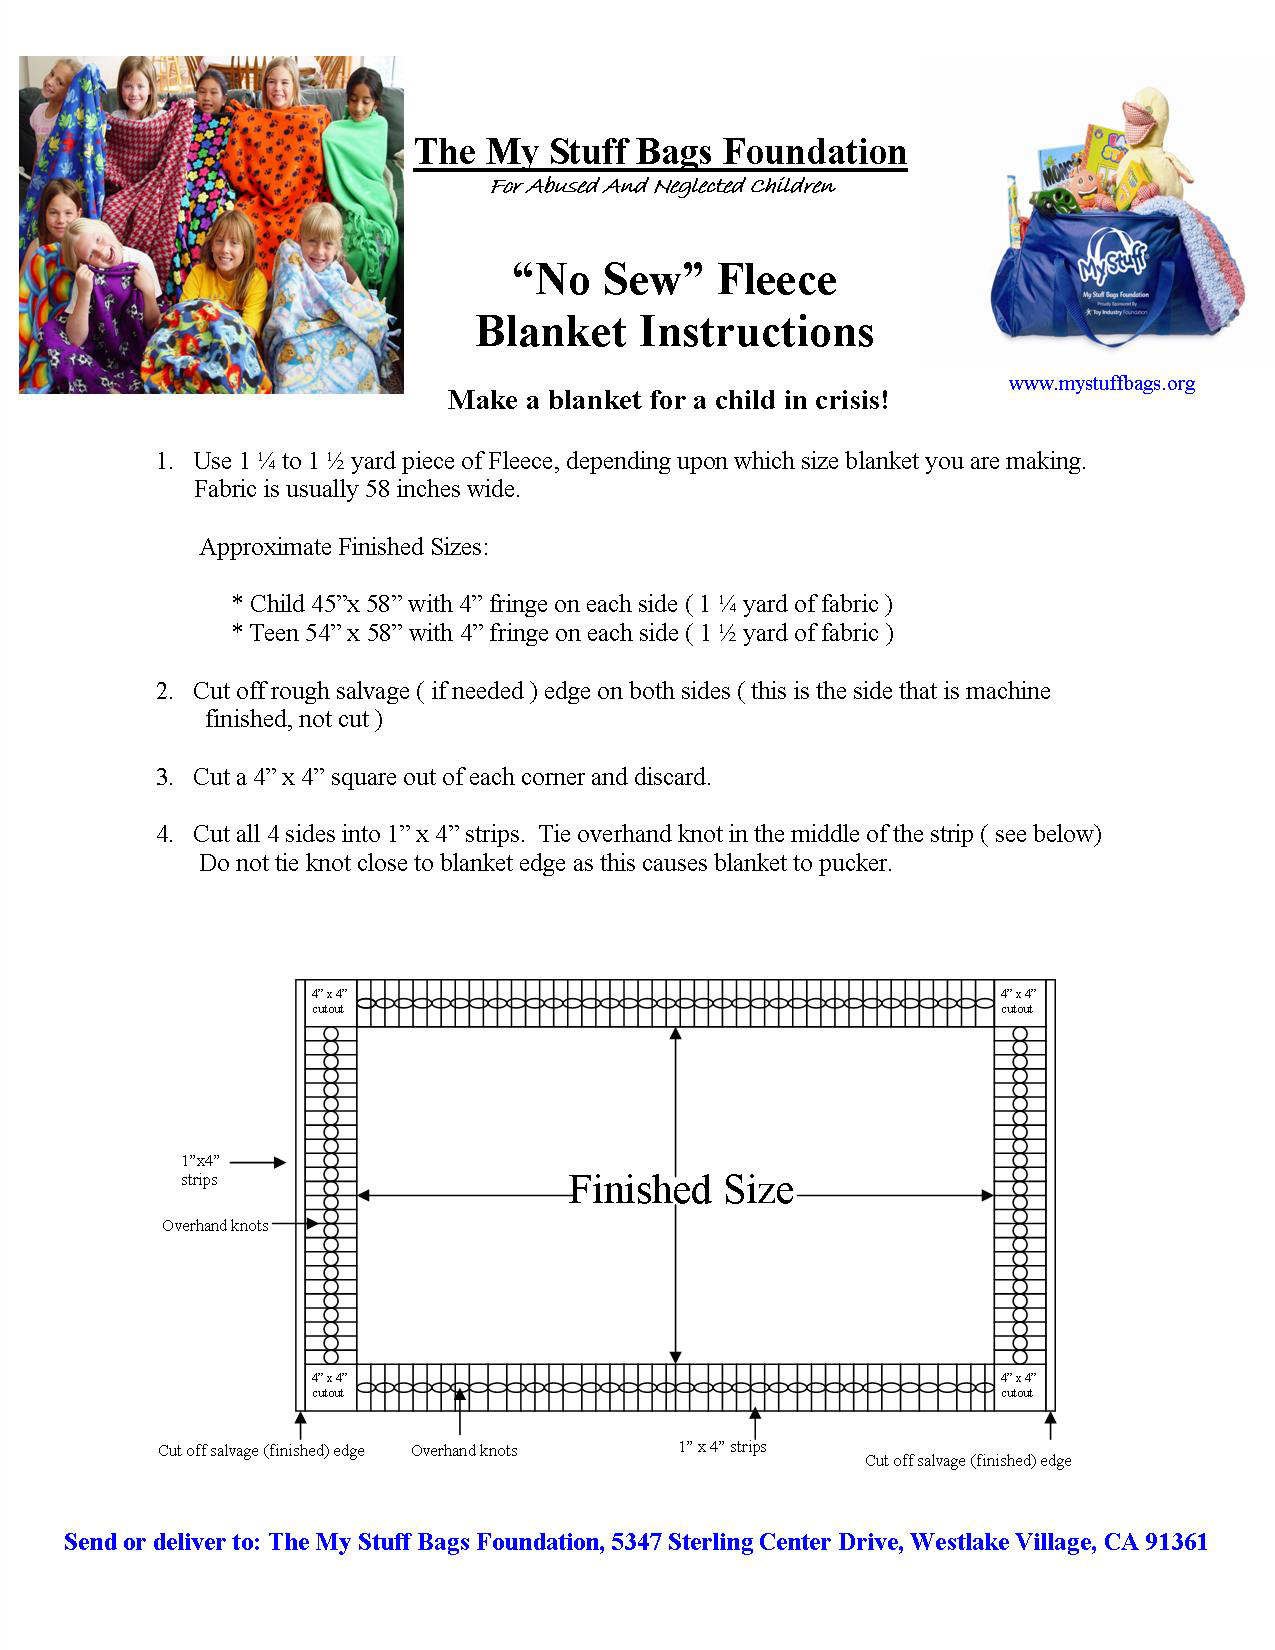 New Fleece Blanket Instructions with Photos